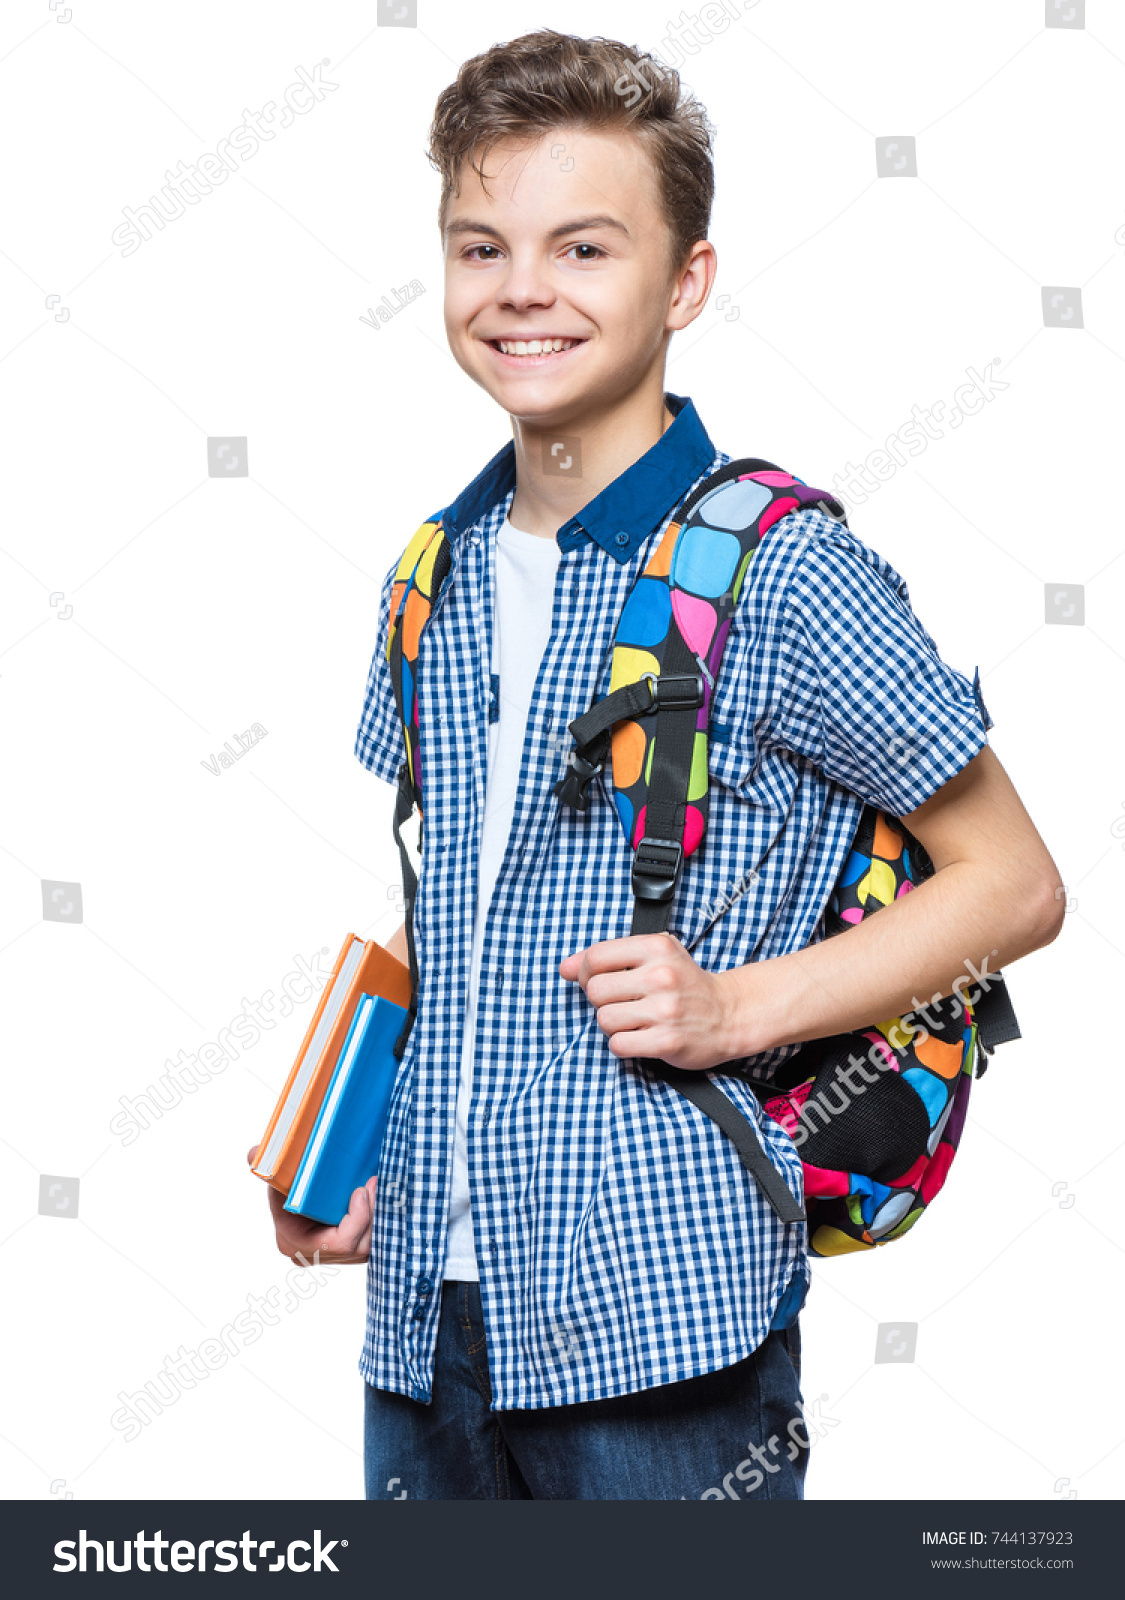 8731821ea3 Portrait of young student with school bag and books. Teenager smiling and  looking at camera. Happy teen boy